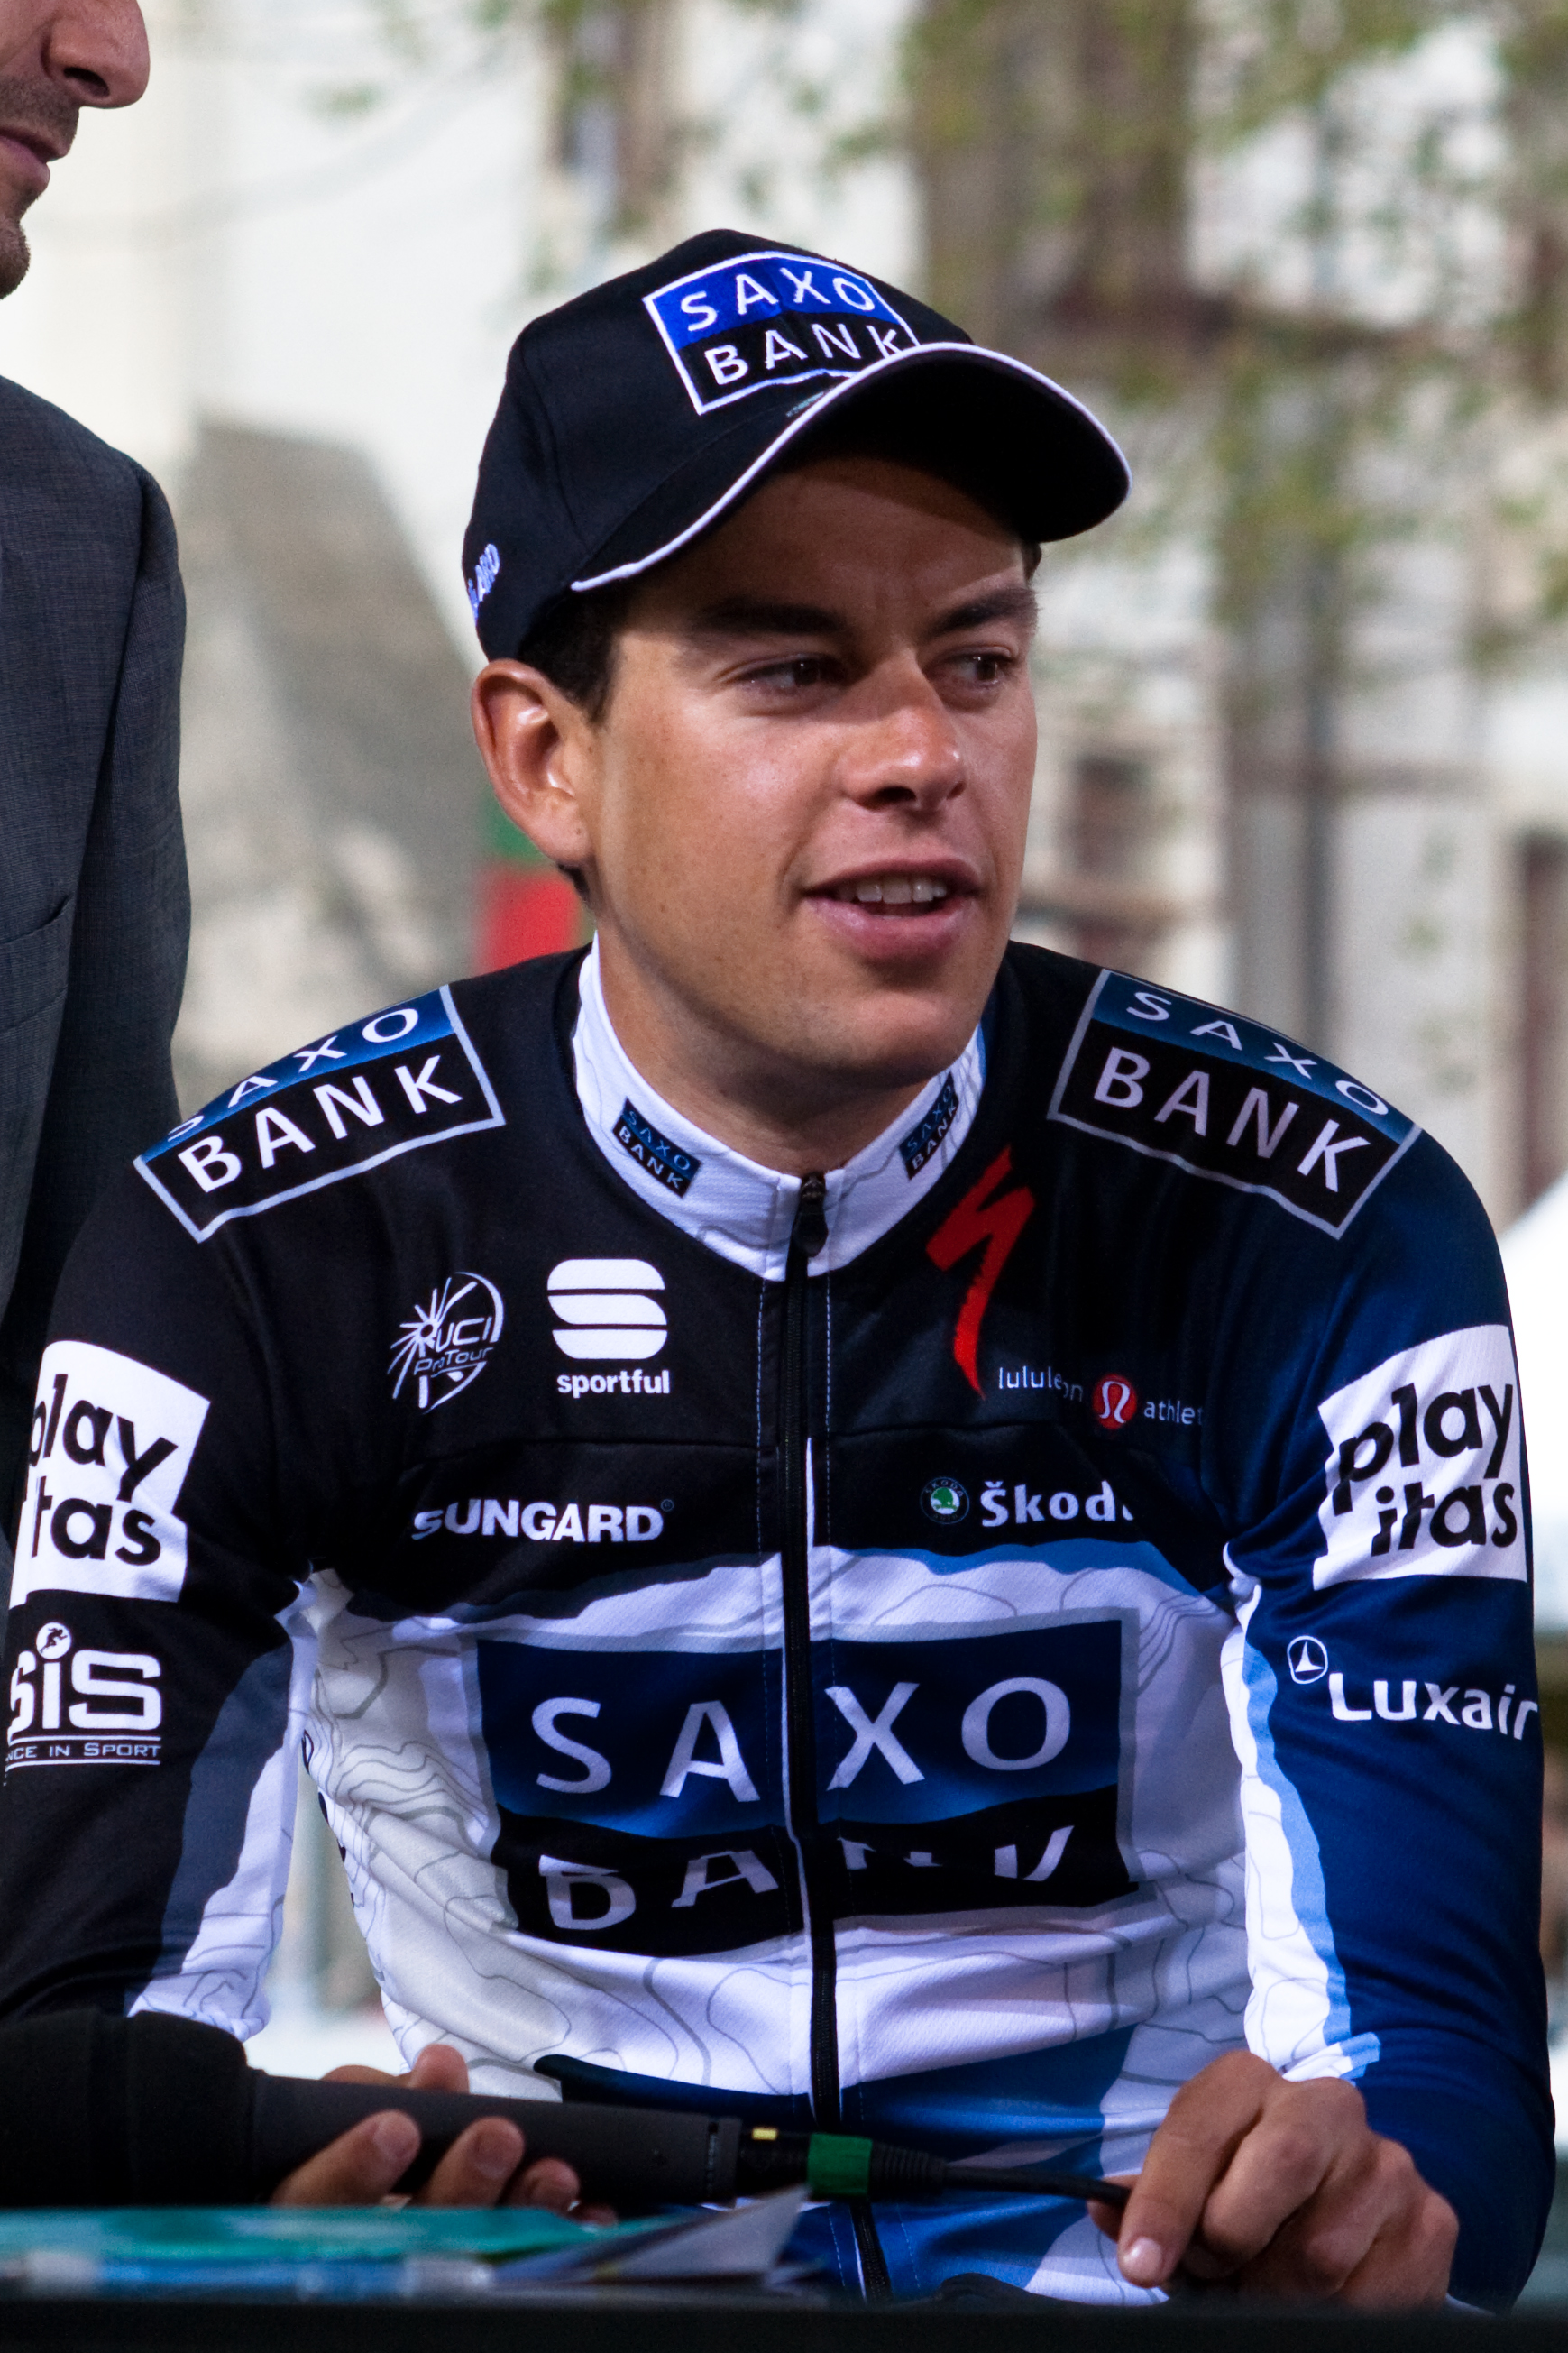 The 33-year old son of father (?) and mother(?) Richie Porte in 2018 photo. Richie Porte earned a  million dollar salary - leaving the net worth at 1.1 million in 2018